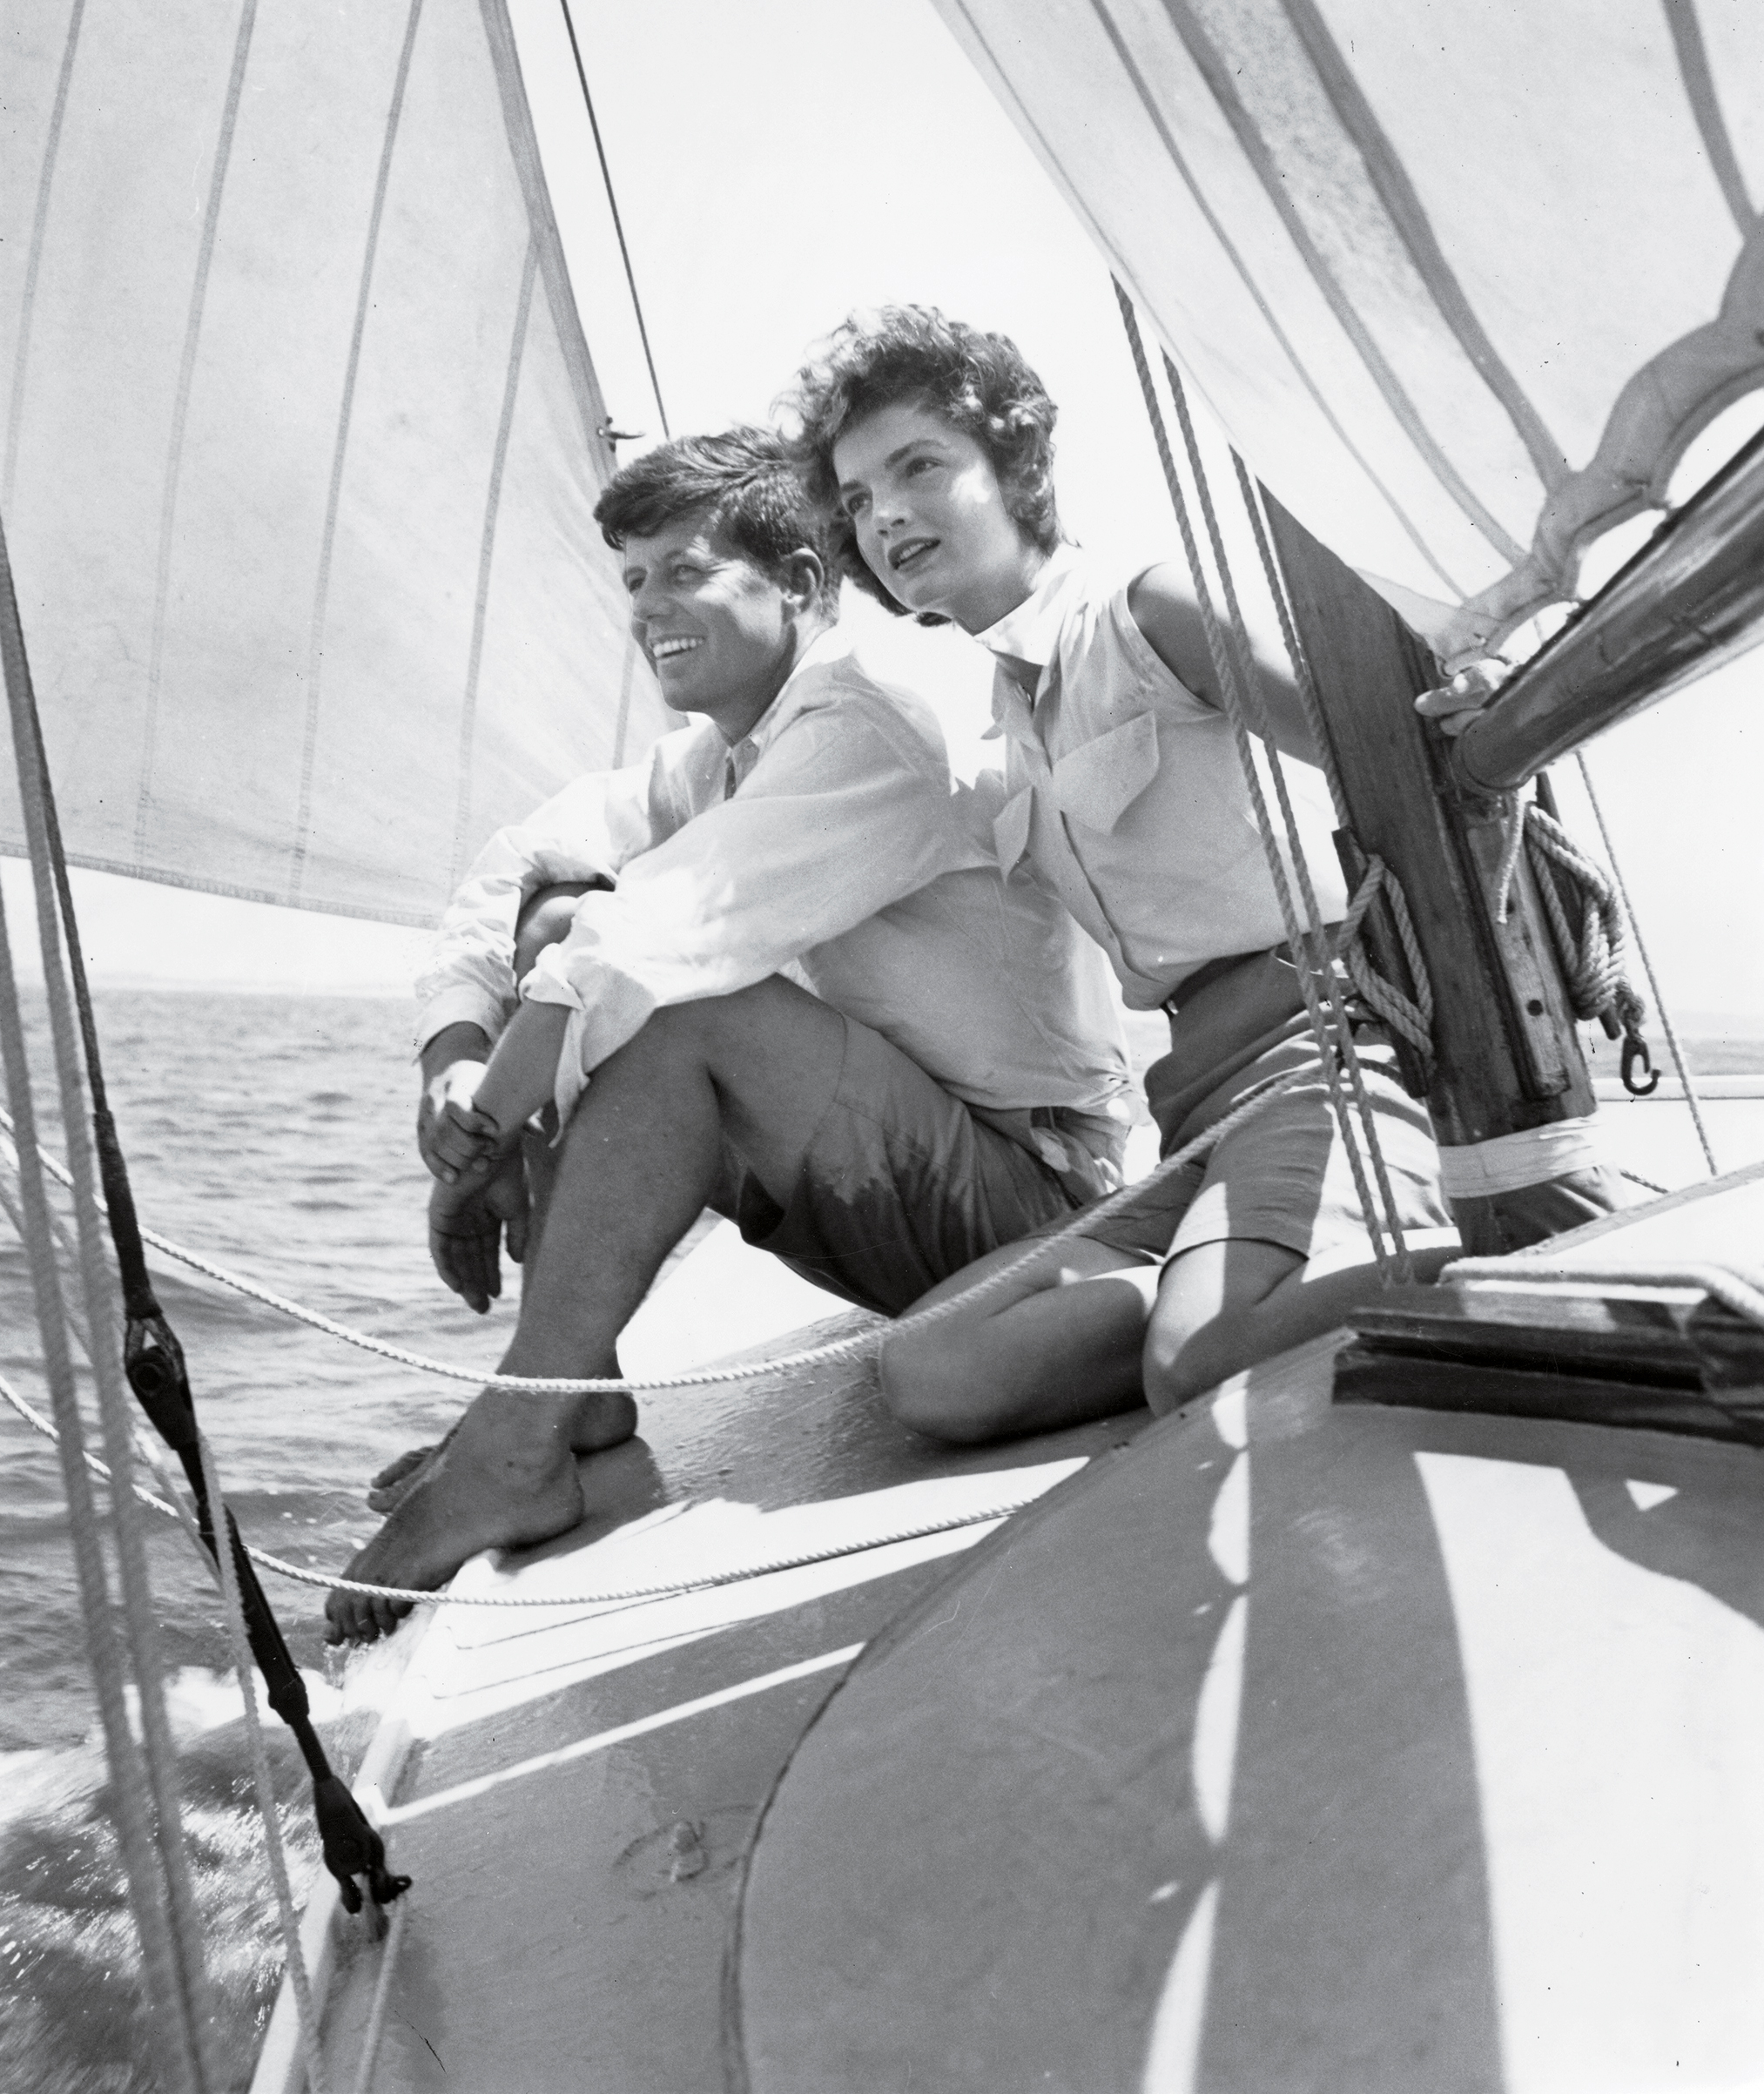 Kennedy and fiancée Jacqueline Bouvier sailing off the coast of Hyannis Port, Mass., in June 1953